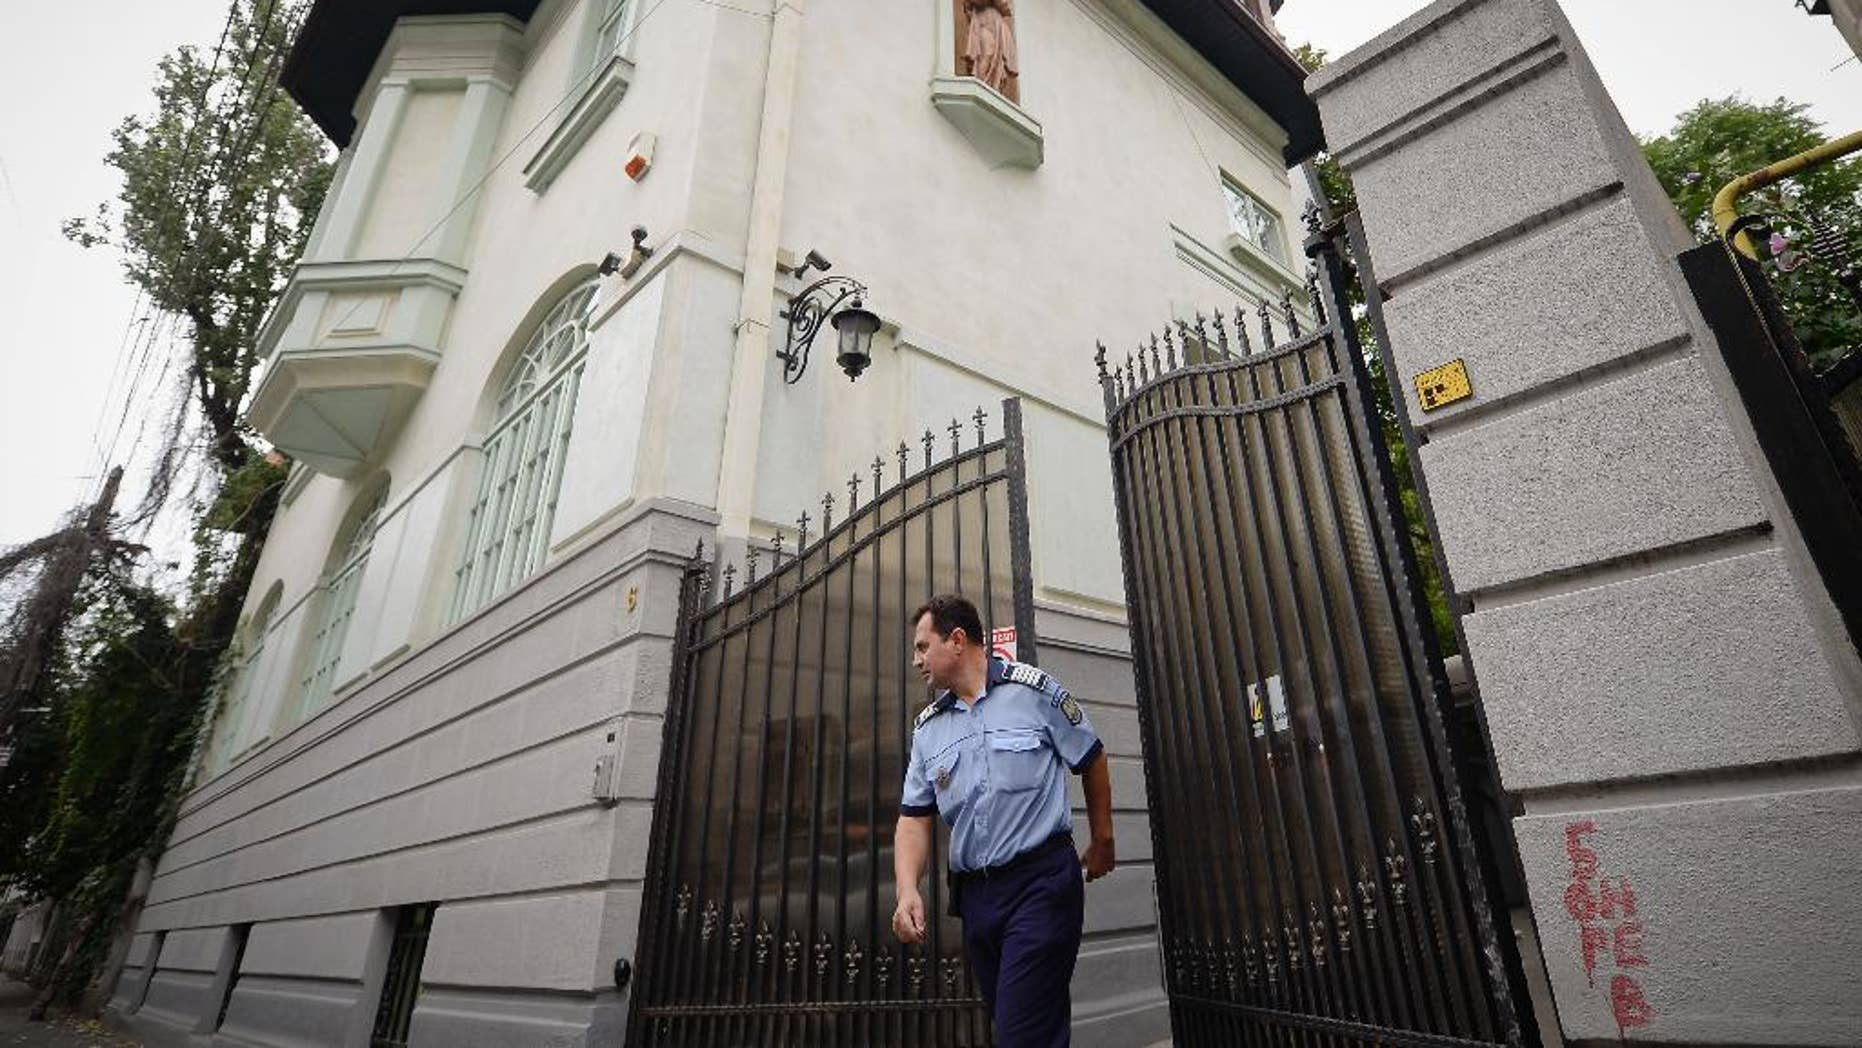 A police officer exits the gate of Romanian Prince Paul's house, in Bucharest, Romania, Thursday, Sept. 10, 2015. The prince's lawyer says his client, who is a grandson to Romania's King Carol II and a nephew to former King Michael, will pay 4.7 million pounds ($7.28 million) to a British Royalty Magazine editor, Marco Houston, following a court decision. (Octav Ganea, Mediafax via AP) ROMANIA OUT